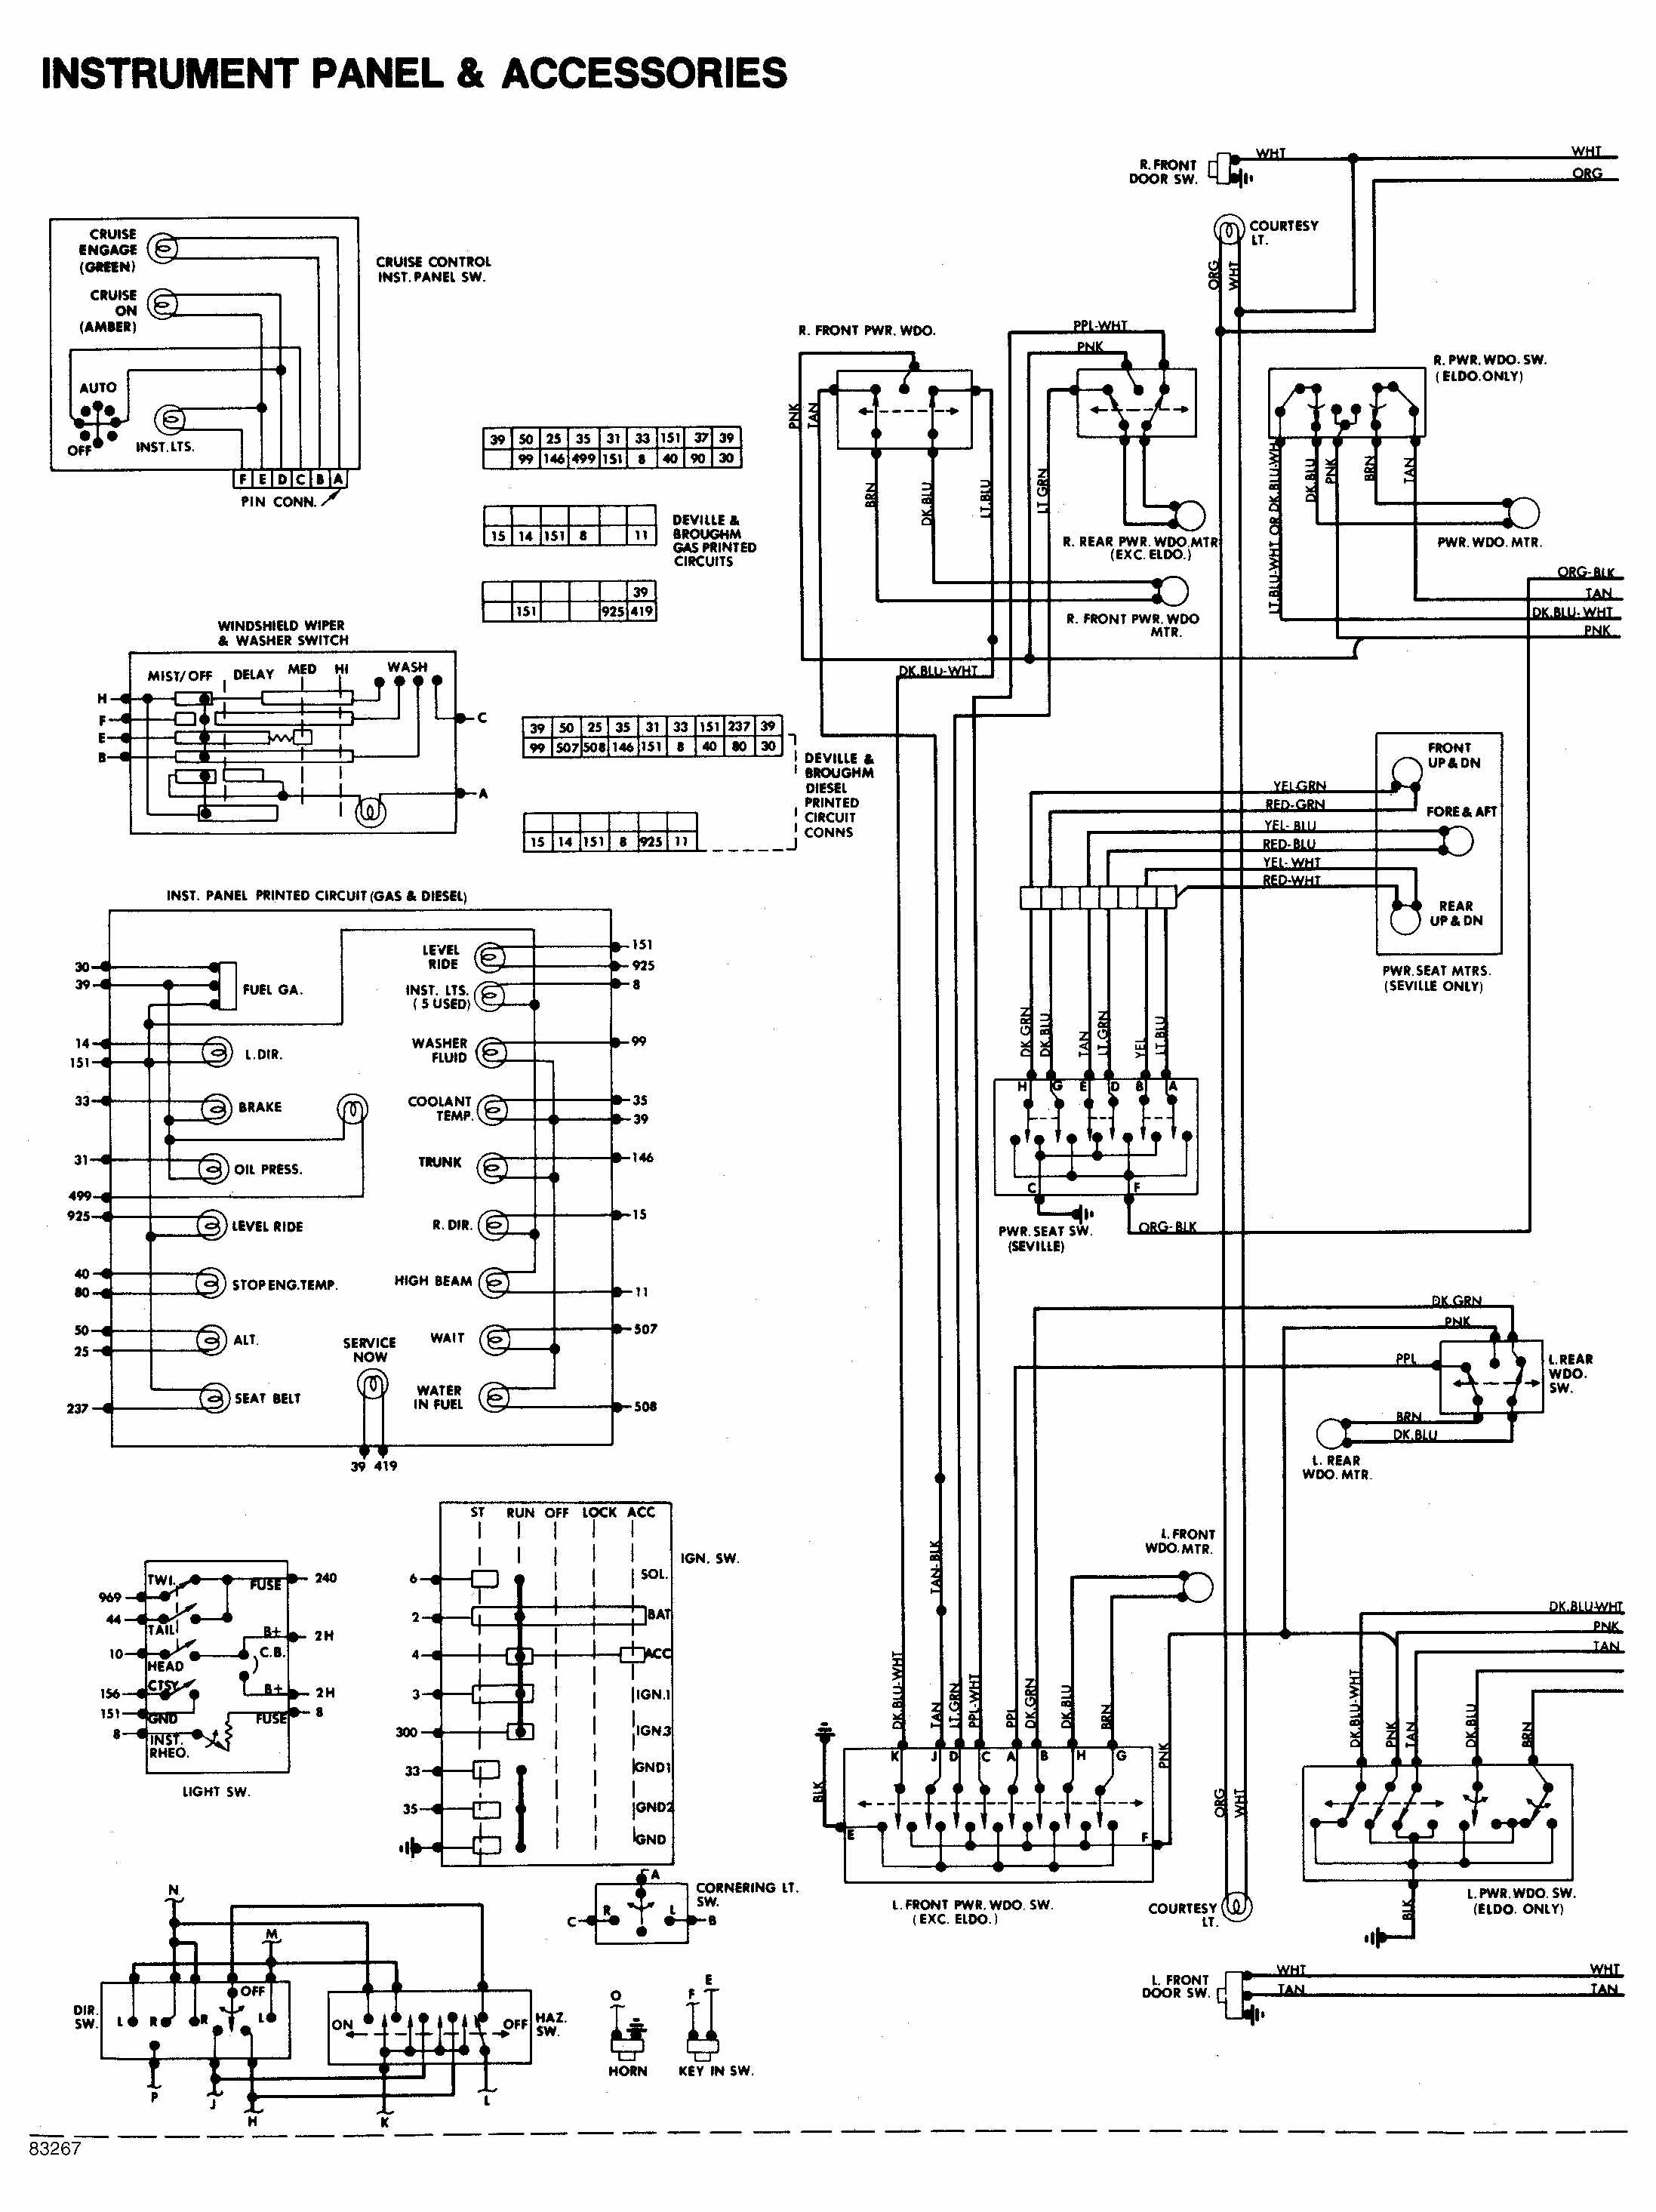 1968 Corvette Wiring Harness - Wiring Diagram Blog on 1998 camaro wiring diagram, 1976 camaro wiring diagram, 1997 camaro water pump, 1997 camaro switch, 1996 camaro wiring diagram, 1997 camaro crankshaft, 1997 camaro schematics, 1991 camaro wiring diagram, 97 camaro wiring diagram, 1992 camaro wiring diagram, 1997 camaro automatic transmission, 2000 camaro wiring diagram, 1997 camaro accessories, 1997 camaro manual, 1997 camaro exhaust system, 1997 camaro clutch, 1985 camaro wiring diagram, 1997 camaro cooling system, 2002 camaro wiring diagram, 1997 camaro suspension,